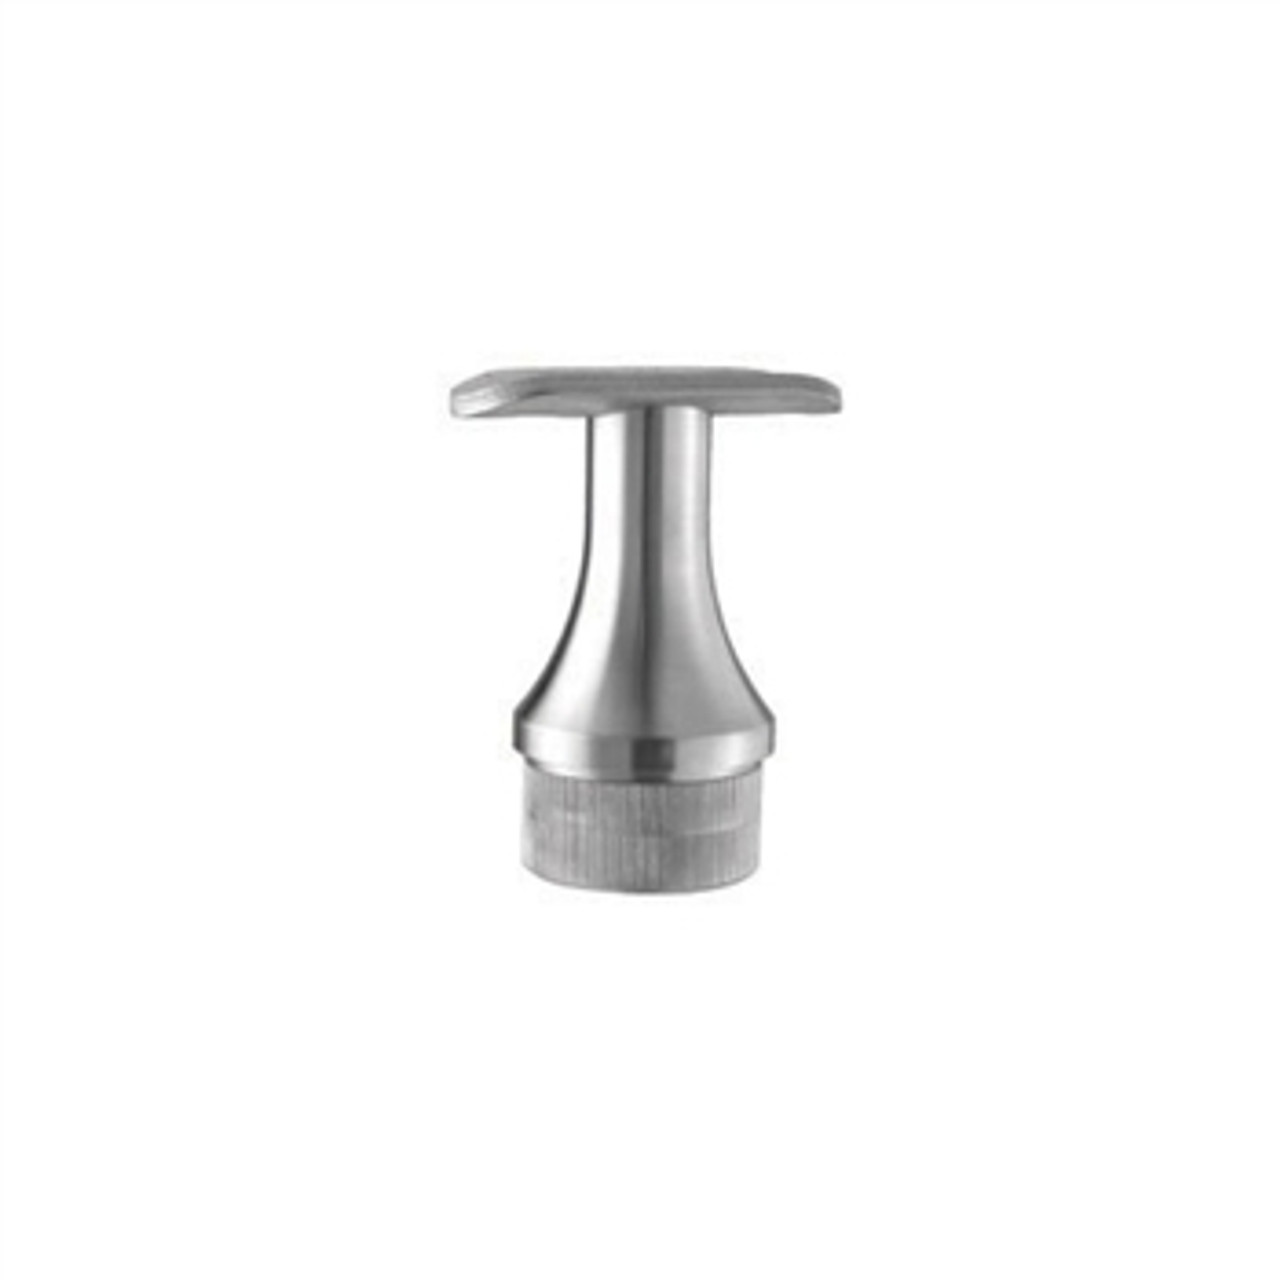 E0102 Stainless Steel Handrail Support, Ridged